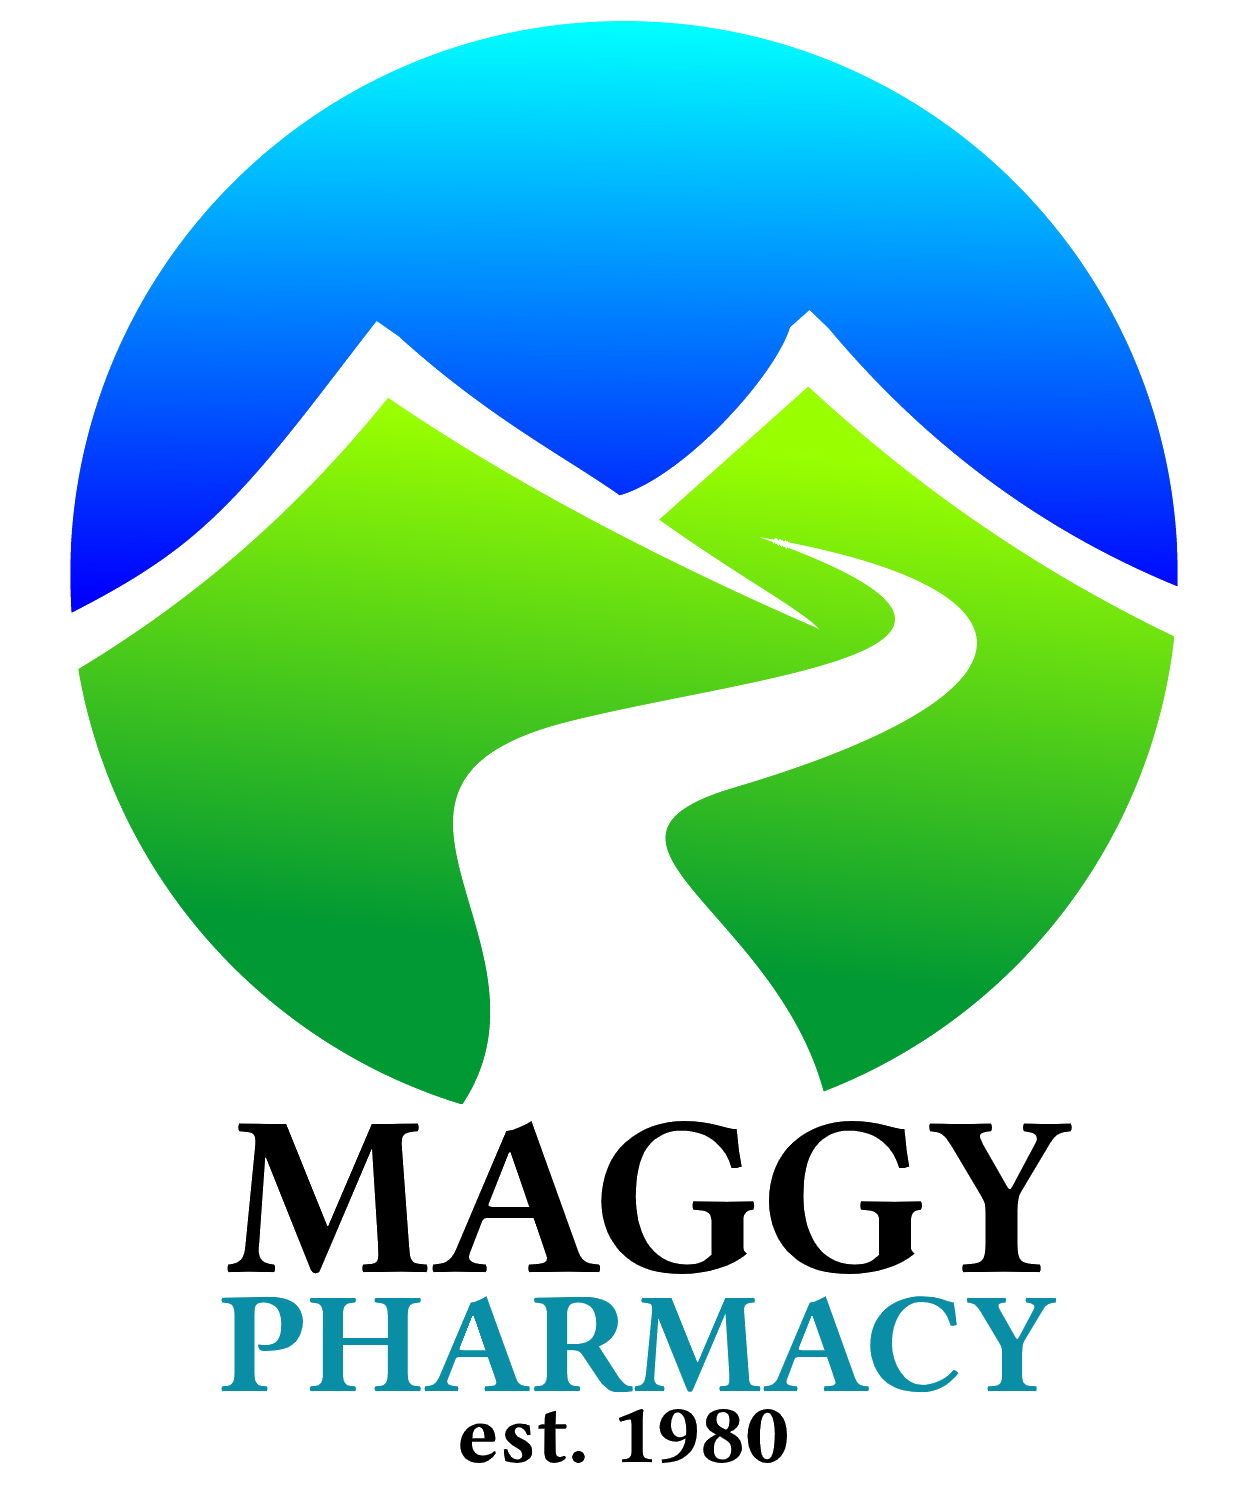 Maggy Pharmacy